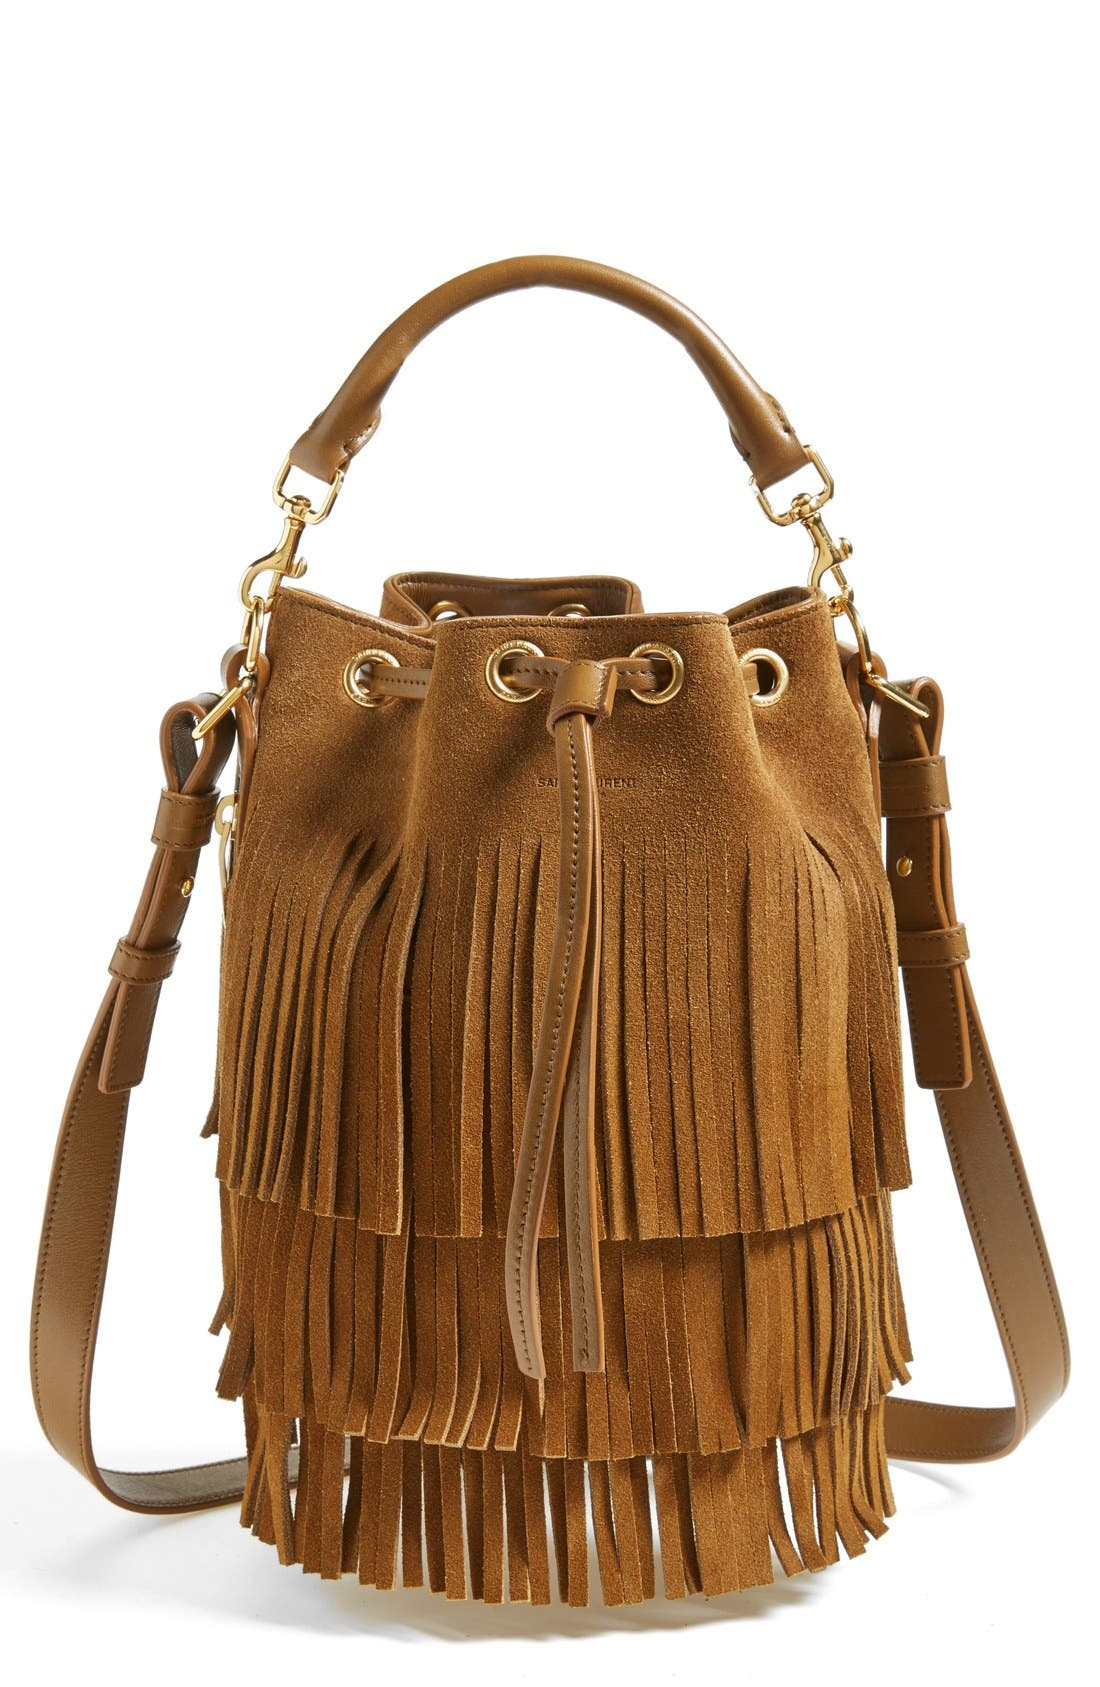 SAINT LAURENT Seau Fringed Suede Bucket Bag